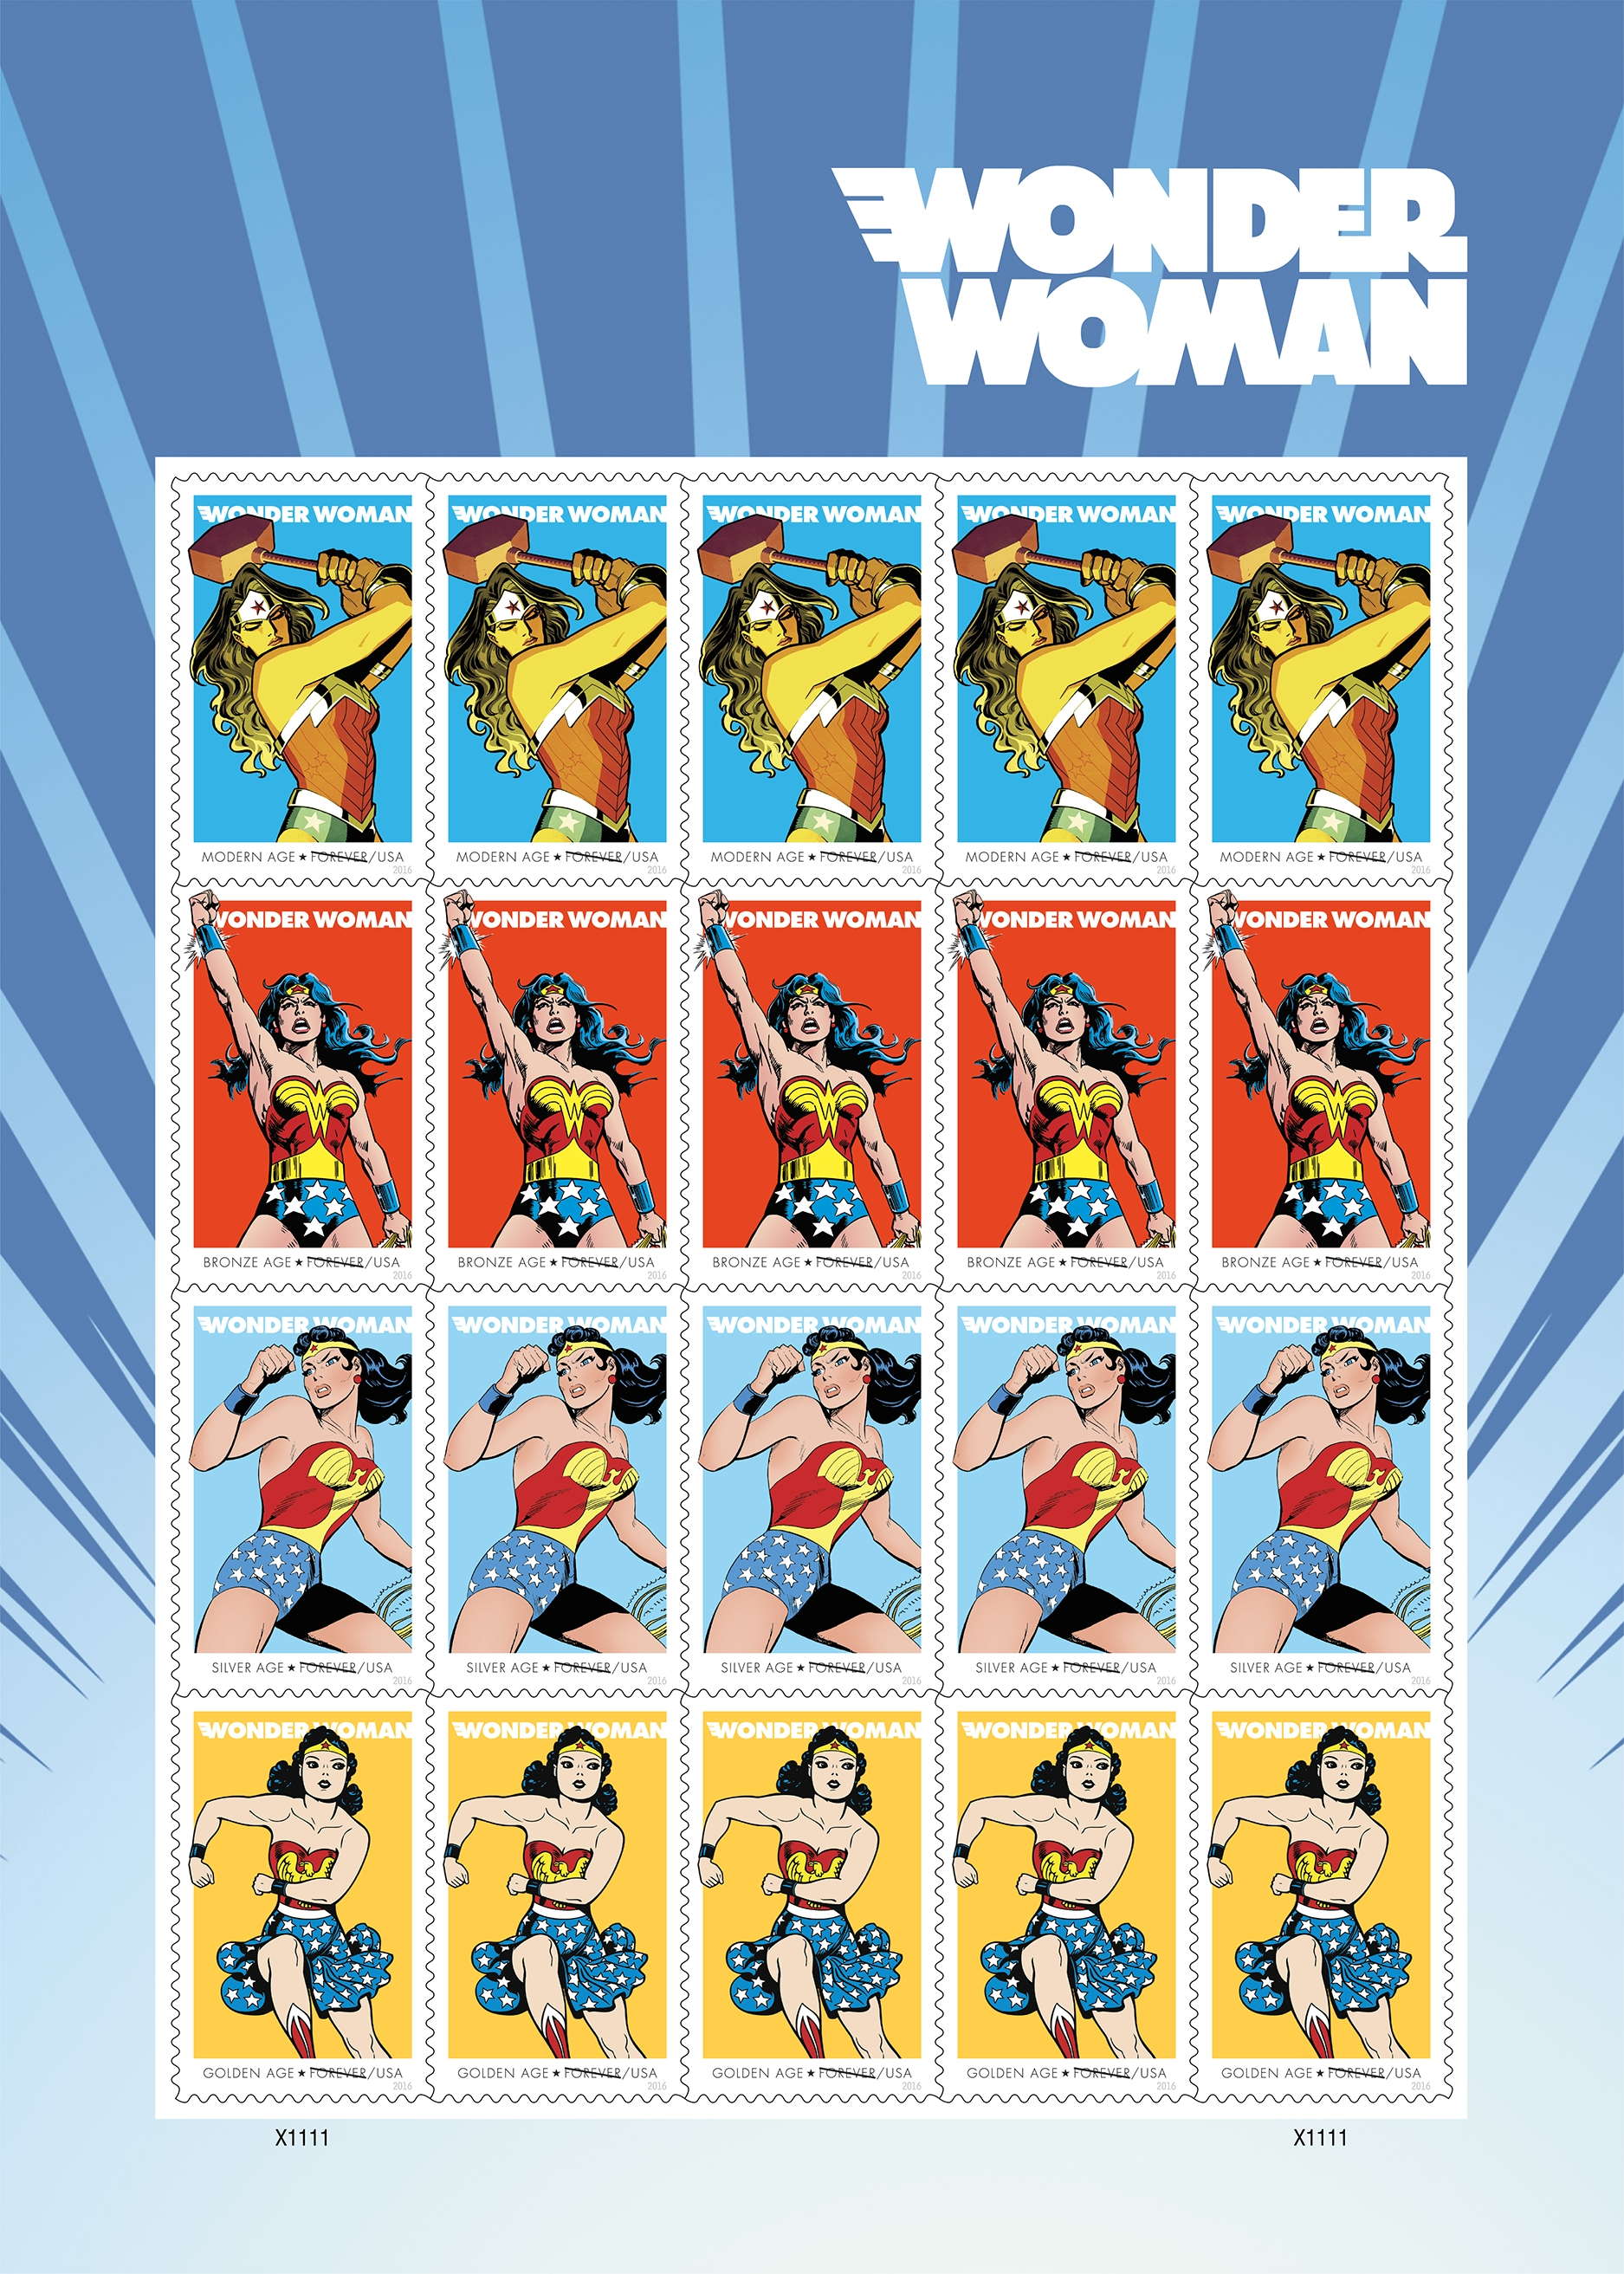 WW_stamps_2016